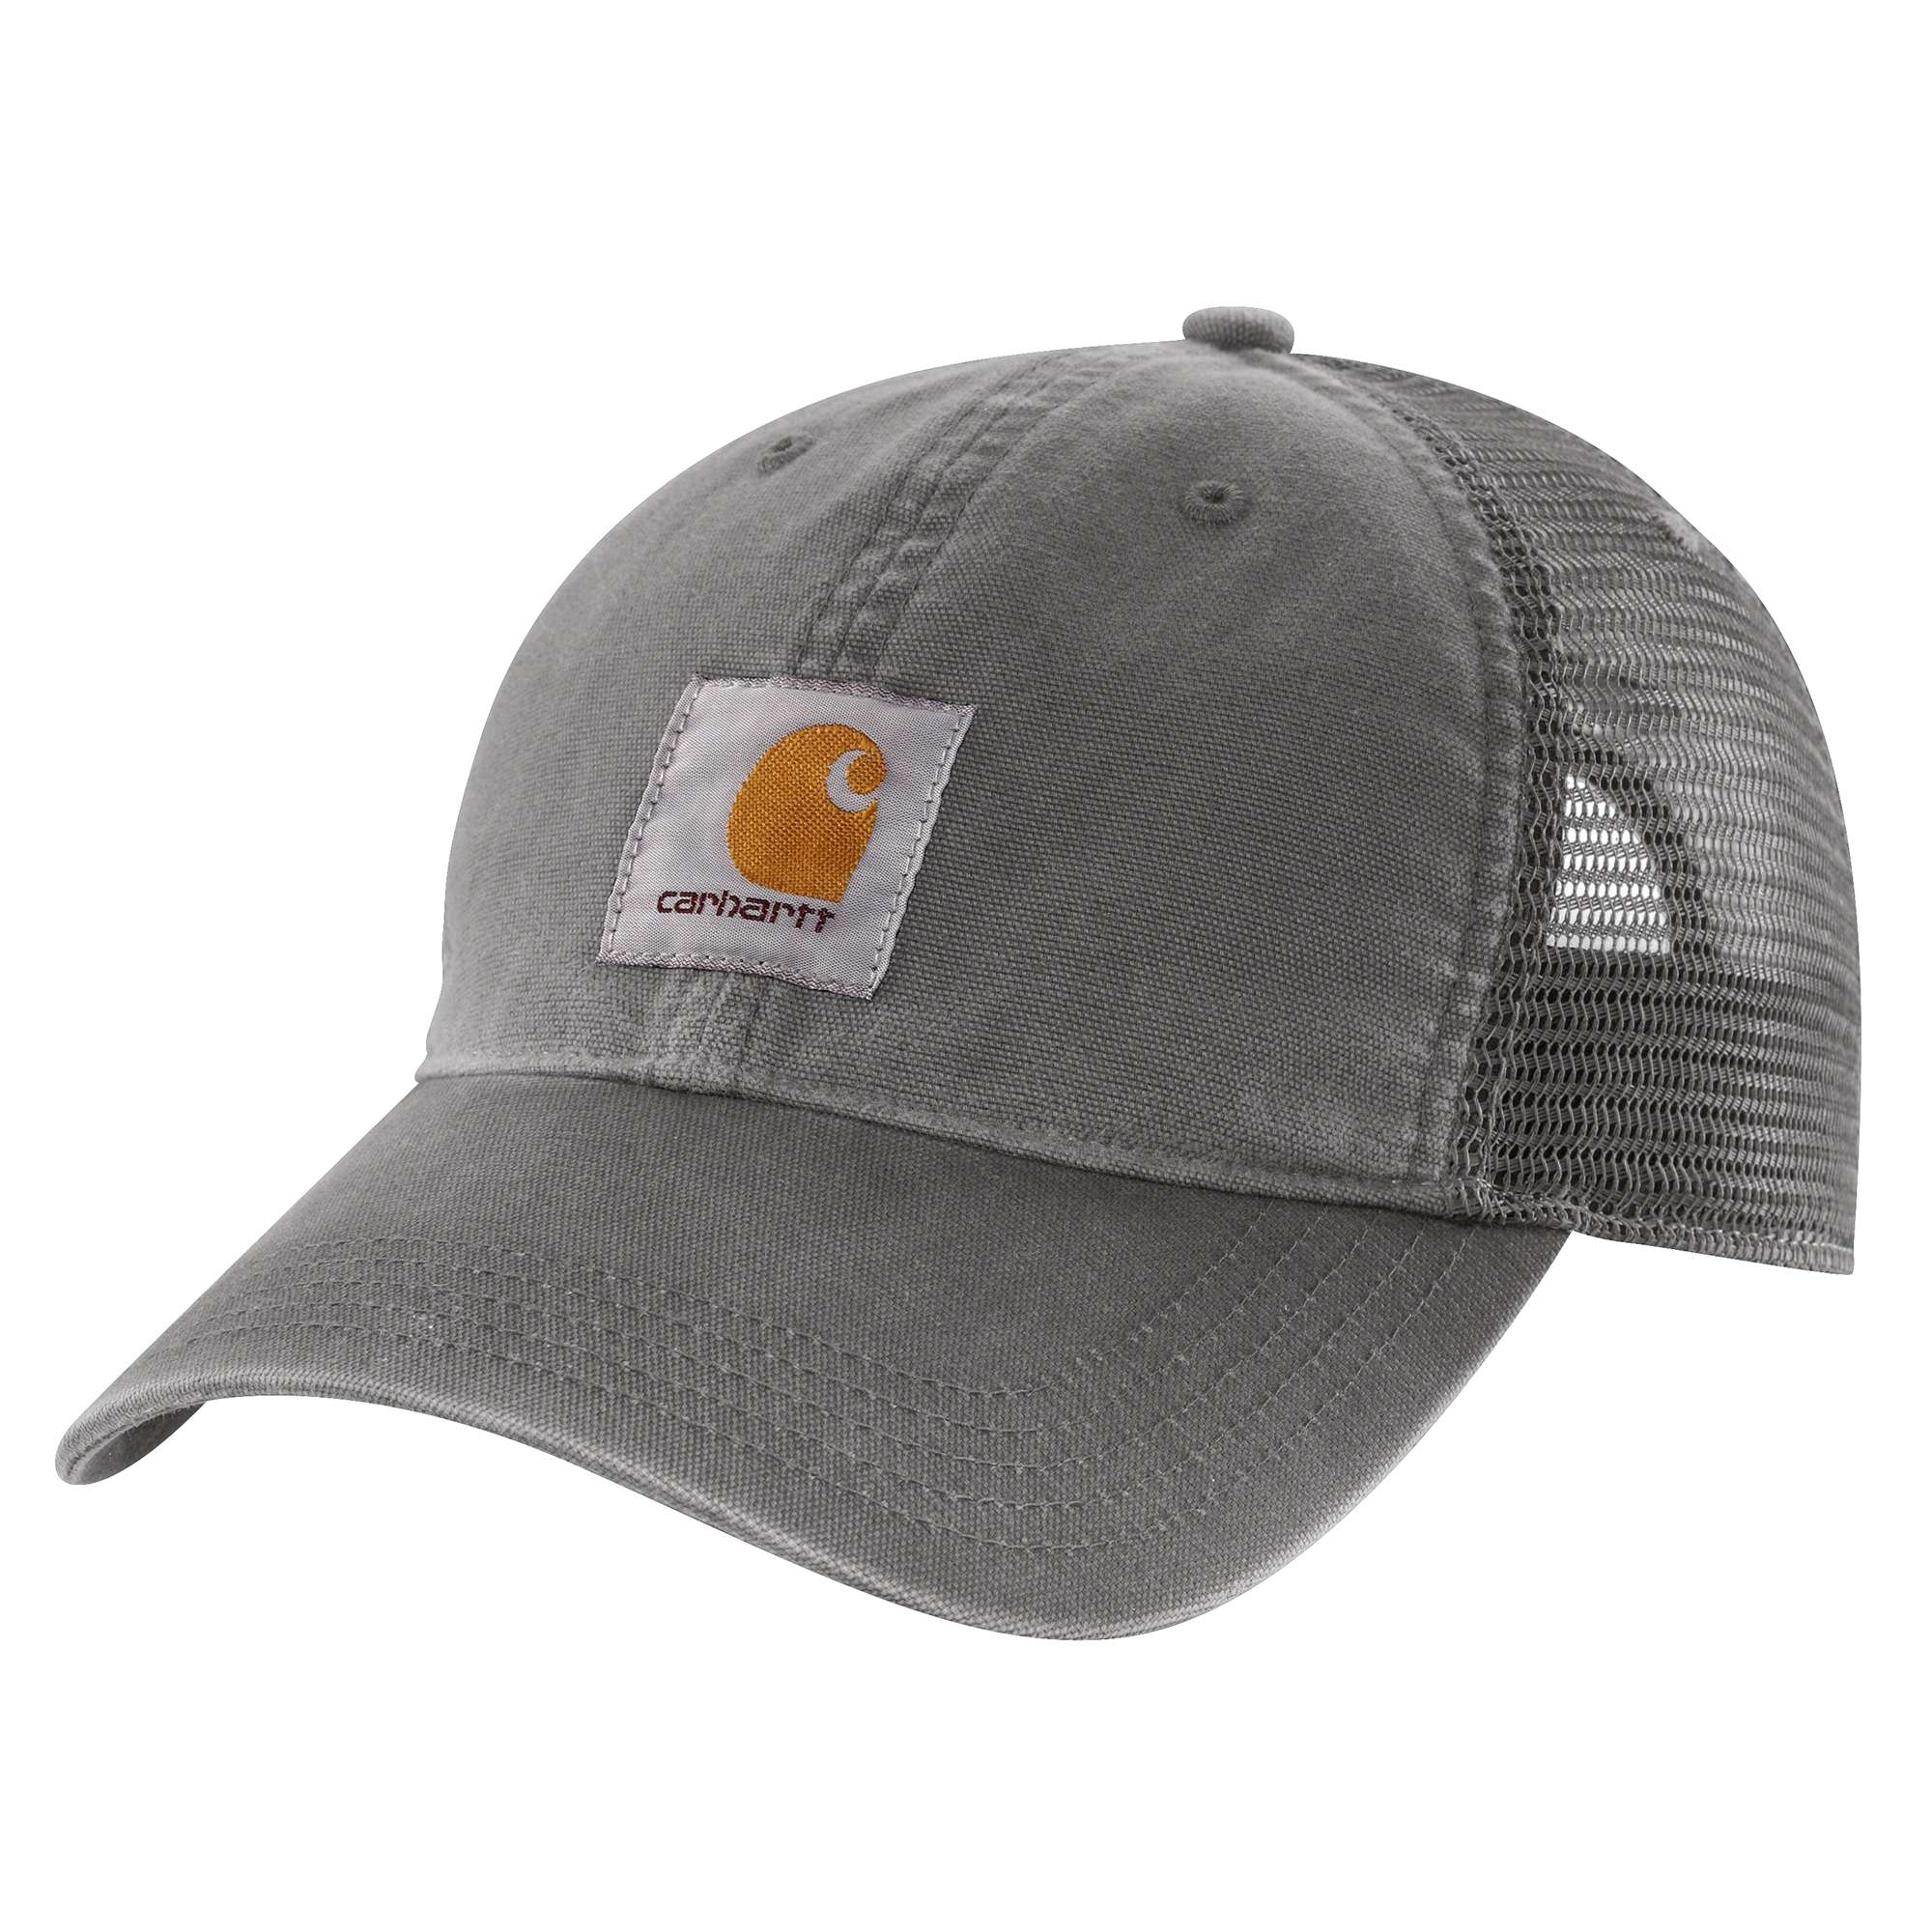 Buffalo Cap, Gray, swatch